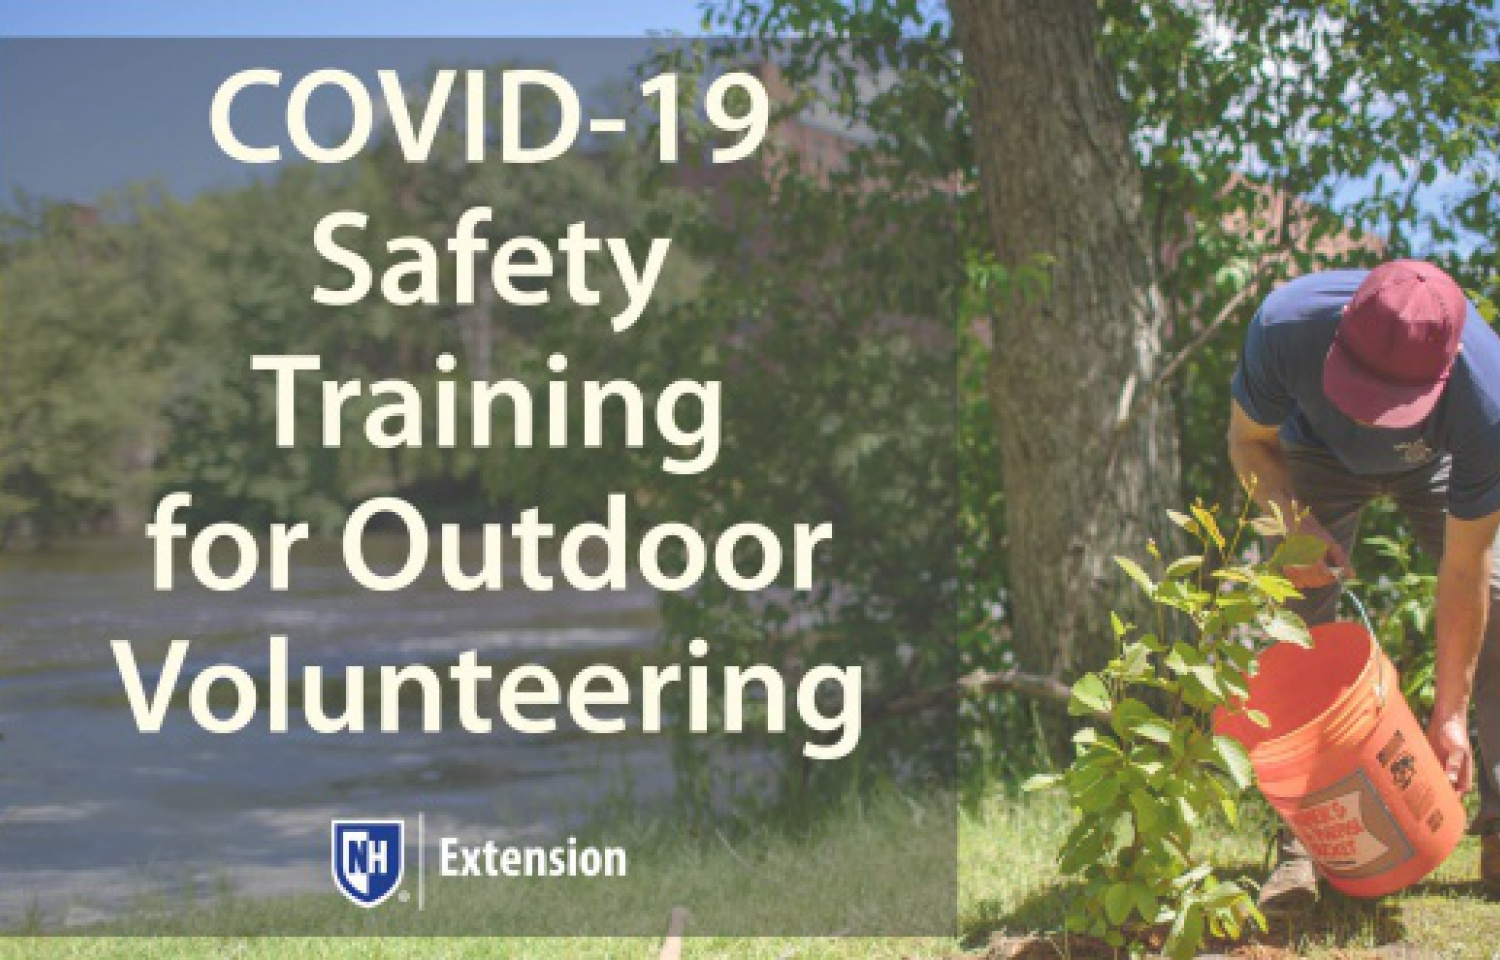 COVID-19 Safety Training for Outdoor Volunteers